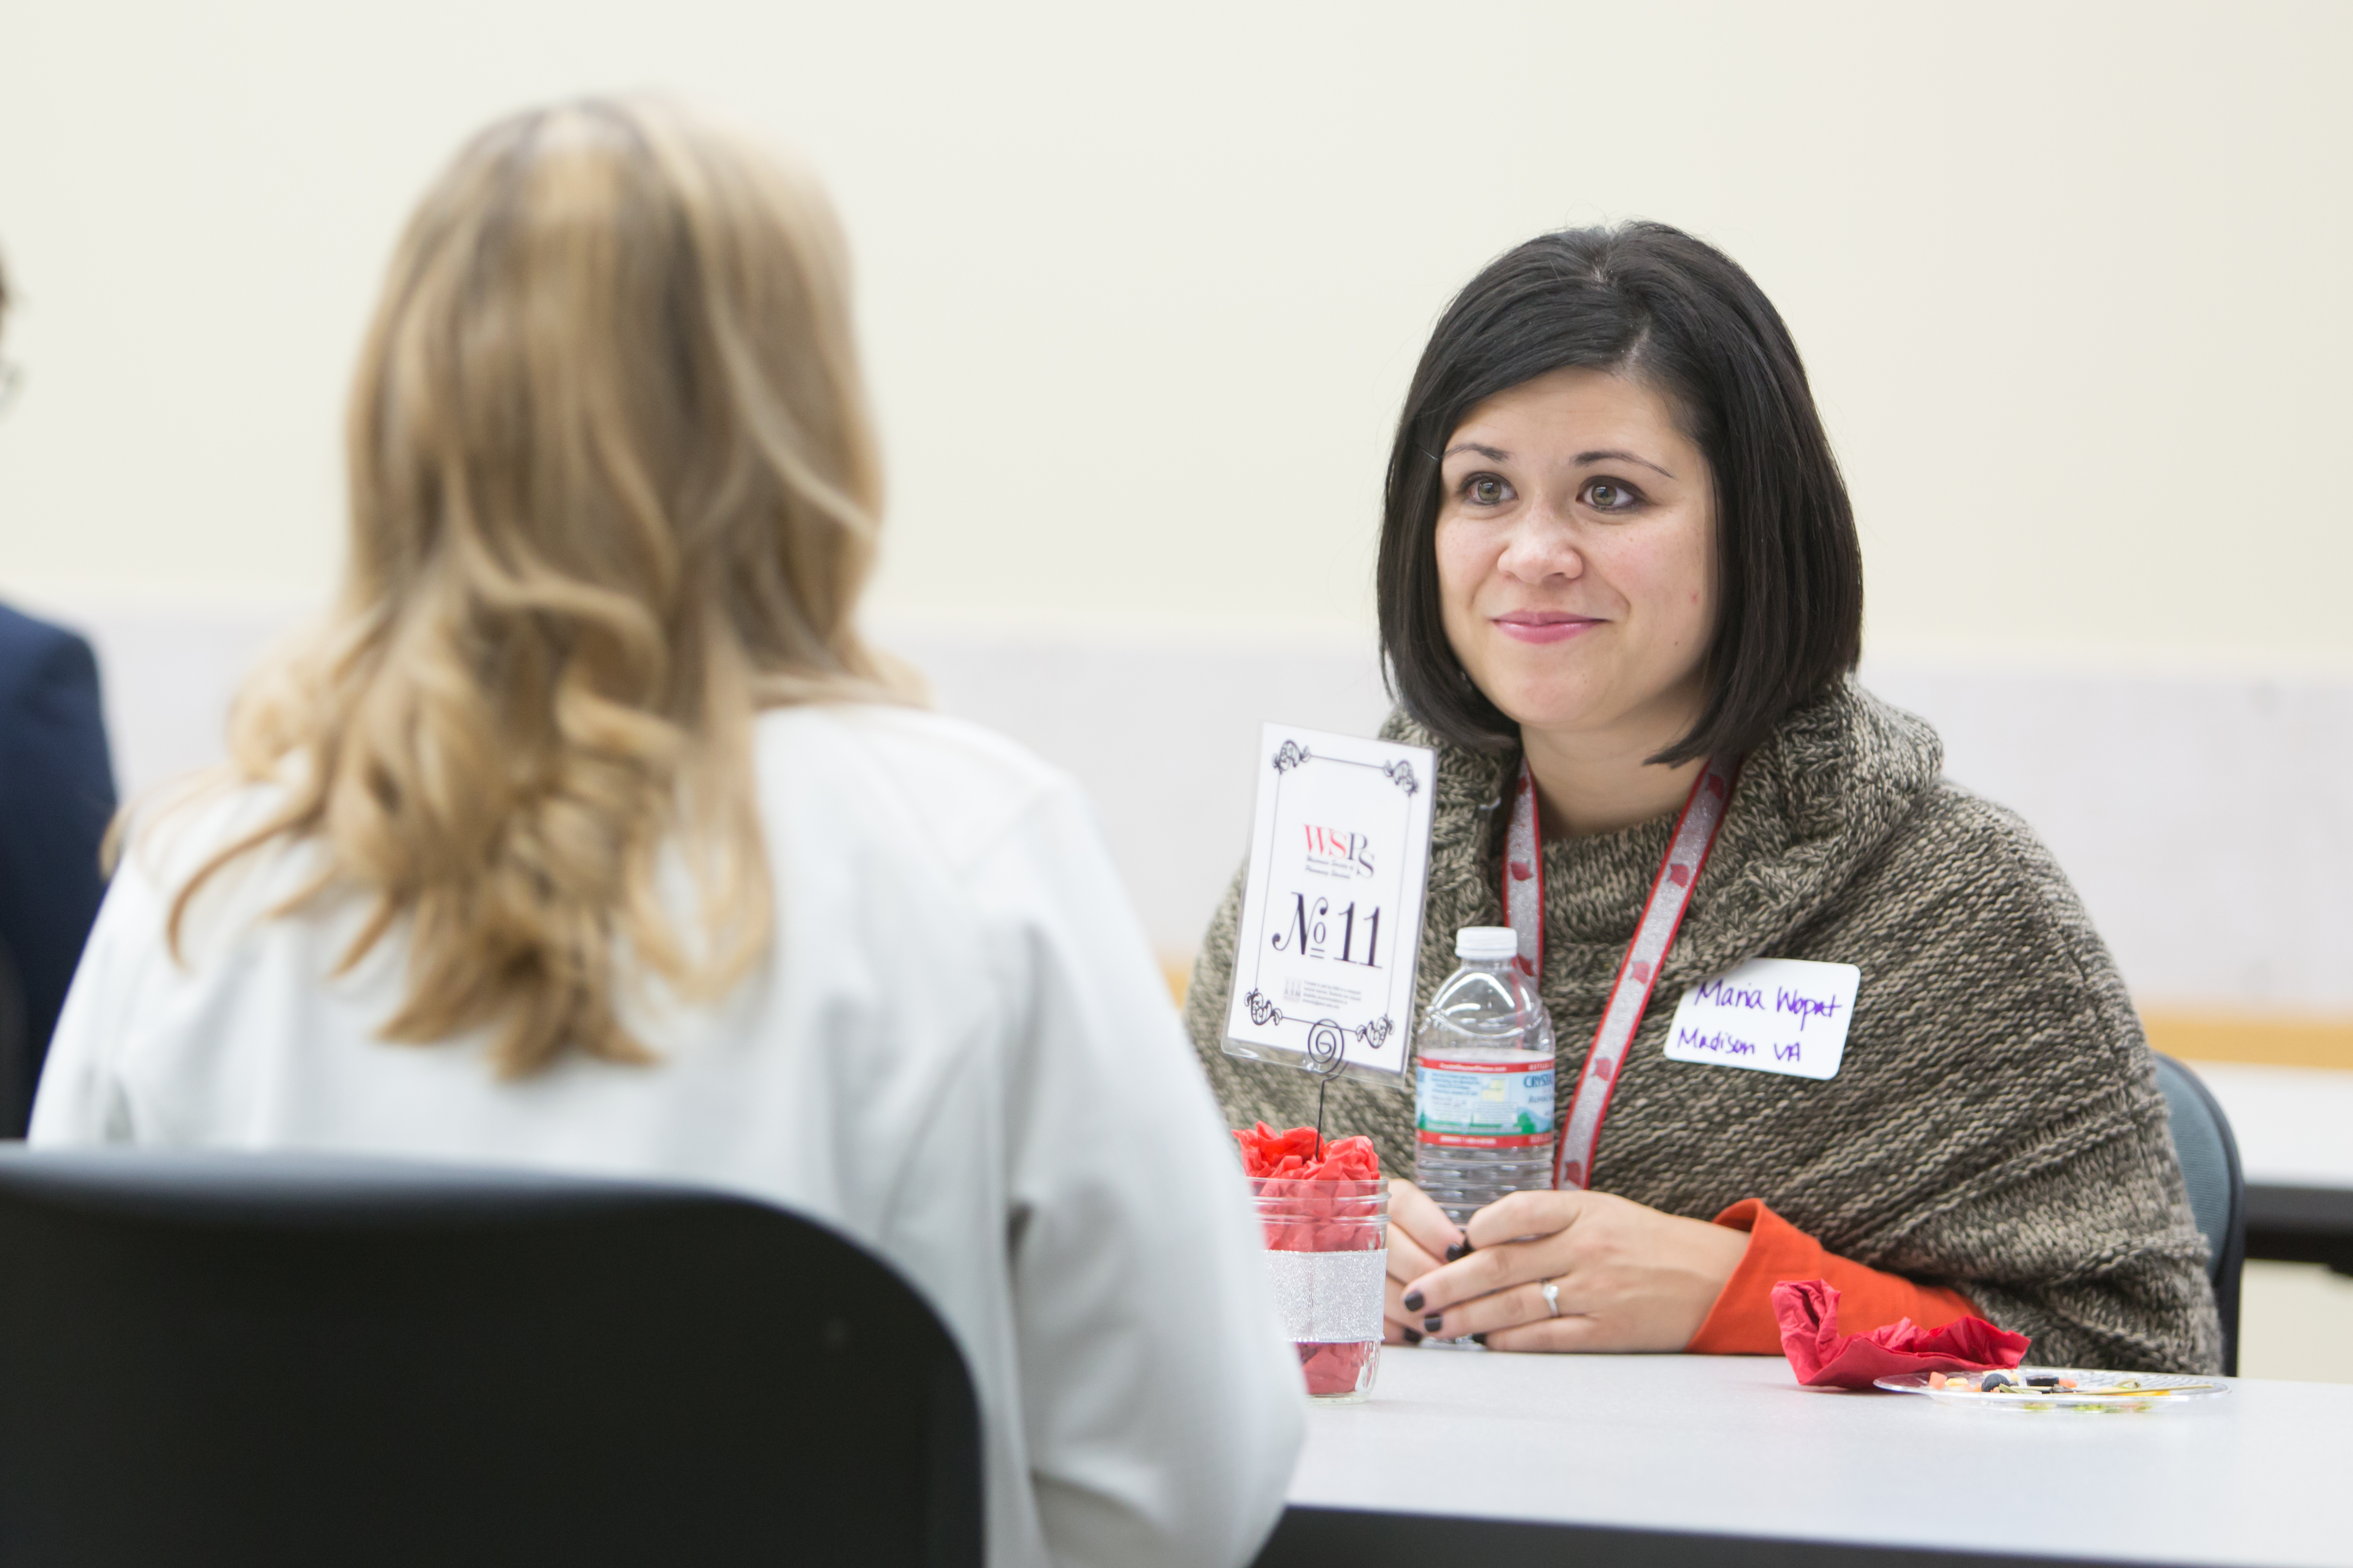 Roundtable Networking with alumna Maria Wopat